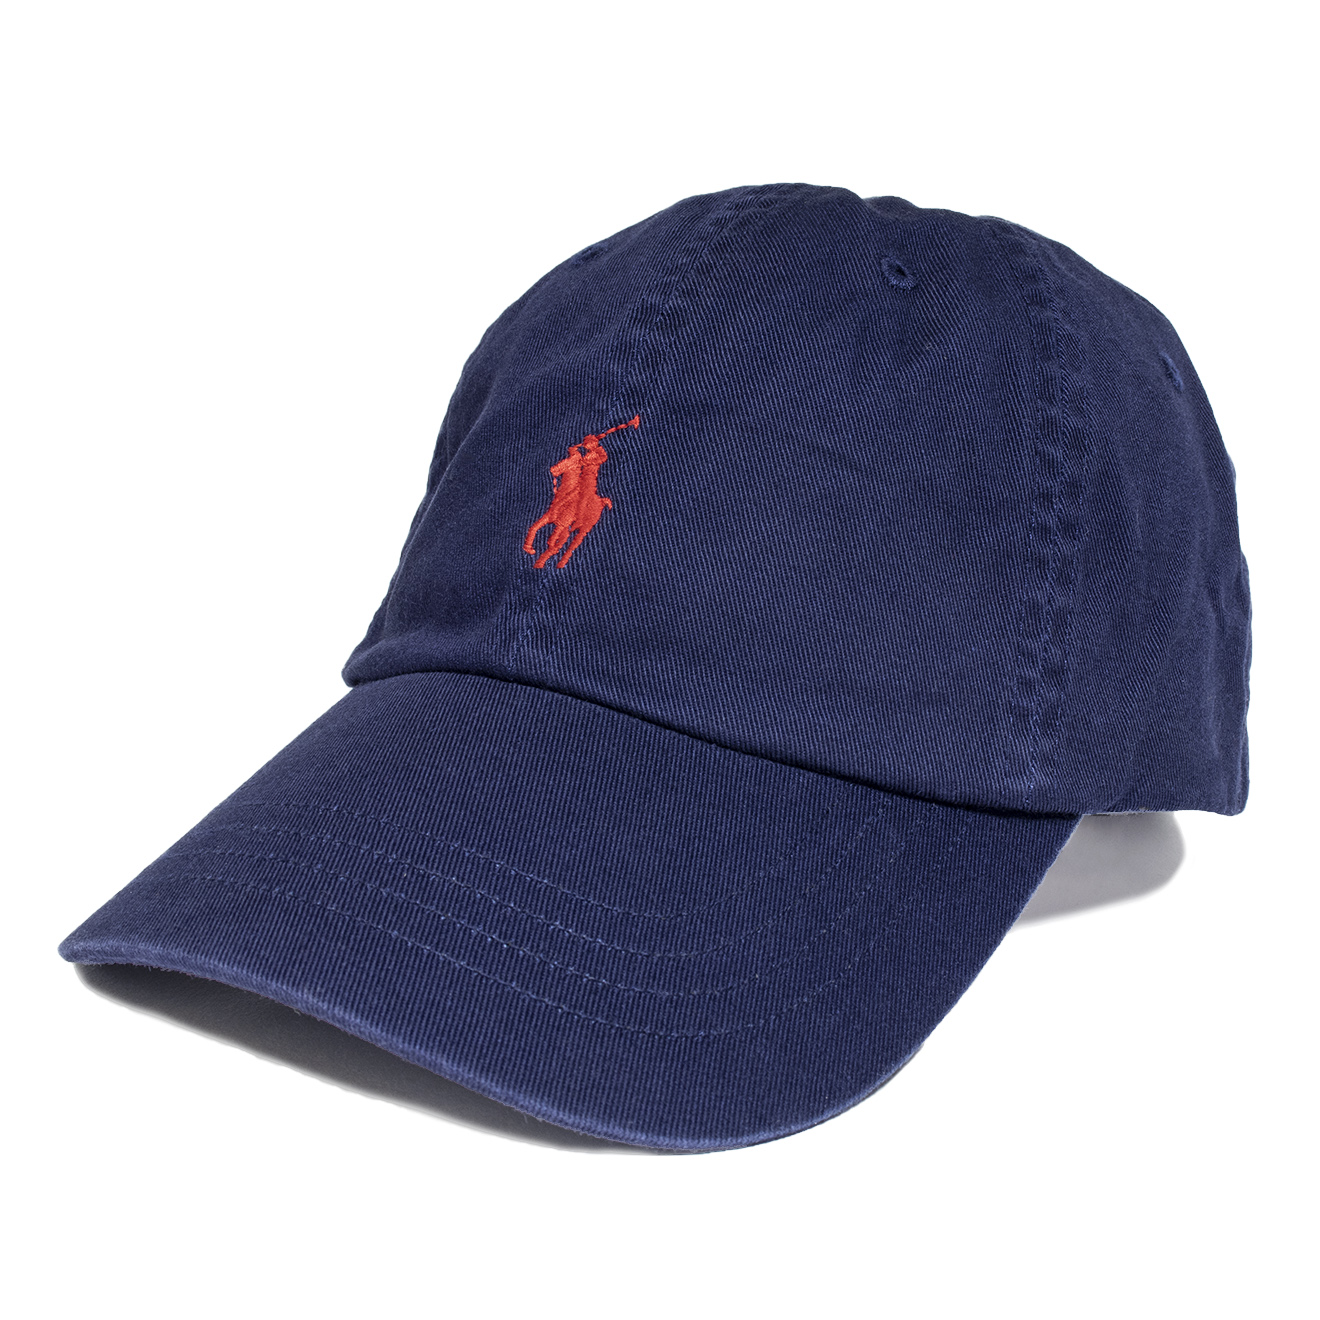 30e5383440af0 Polo Ralph Lauren Classic Cotton Chino Baseball Cap Navy - The ...